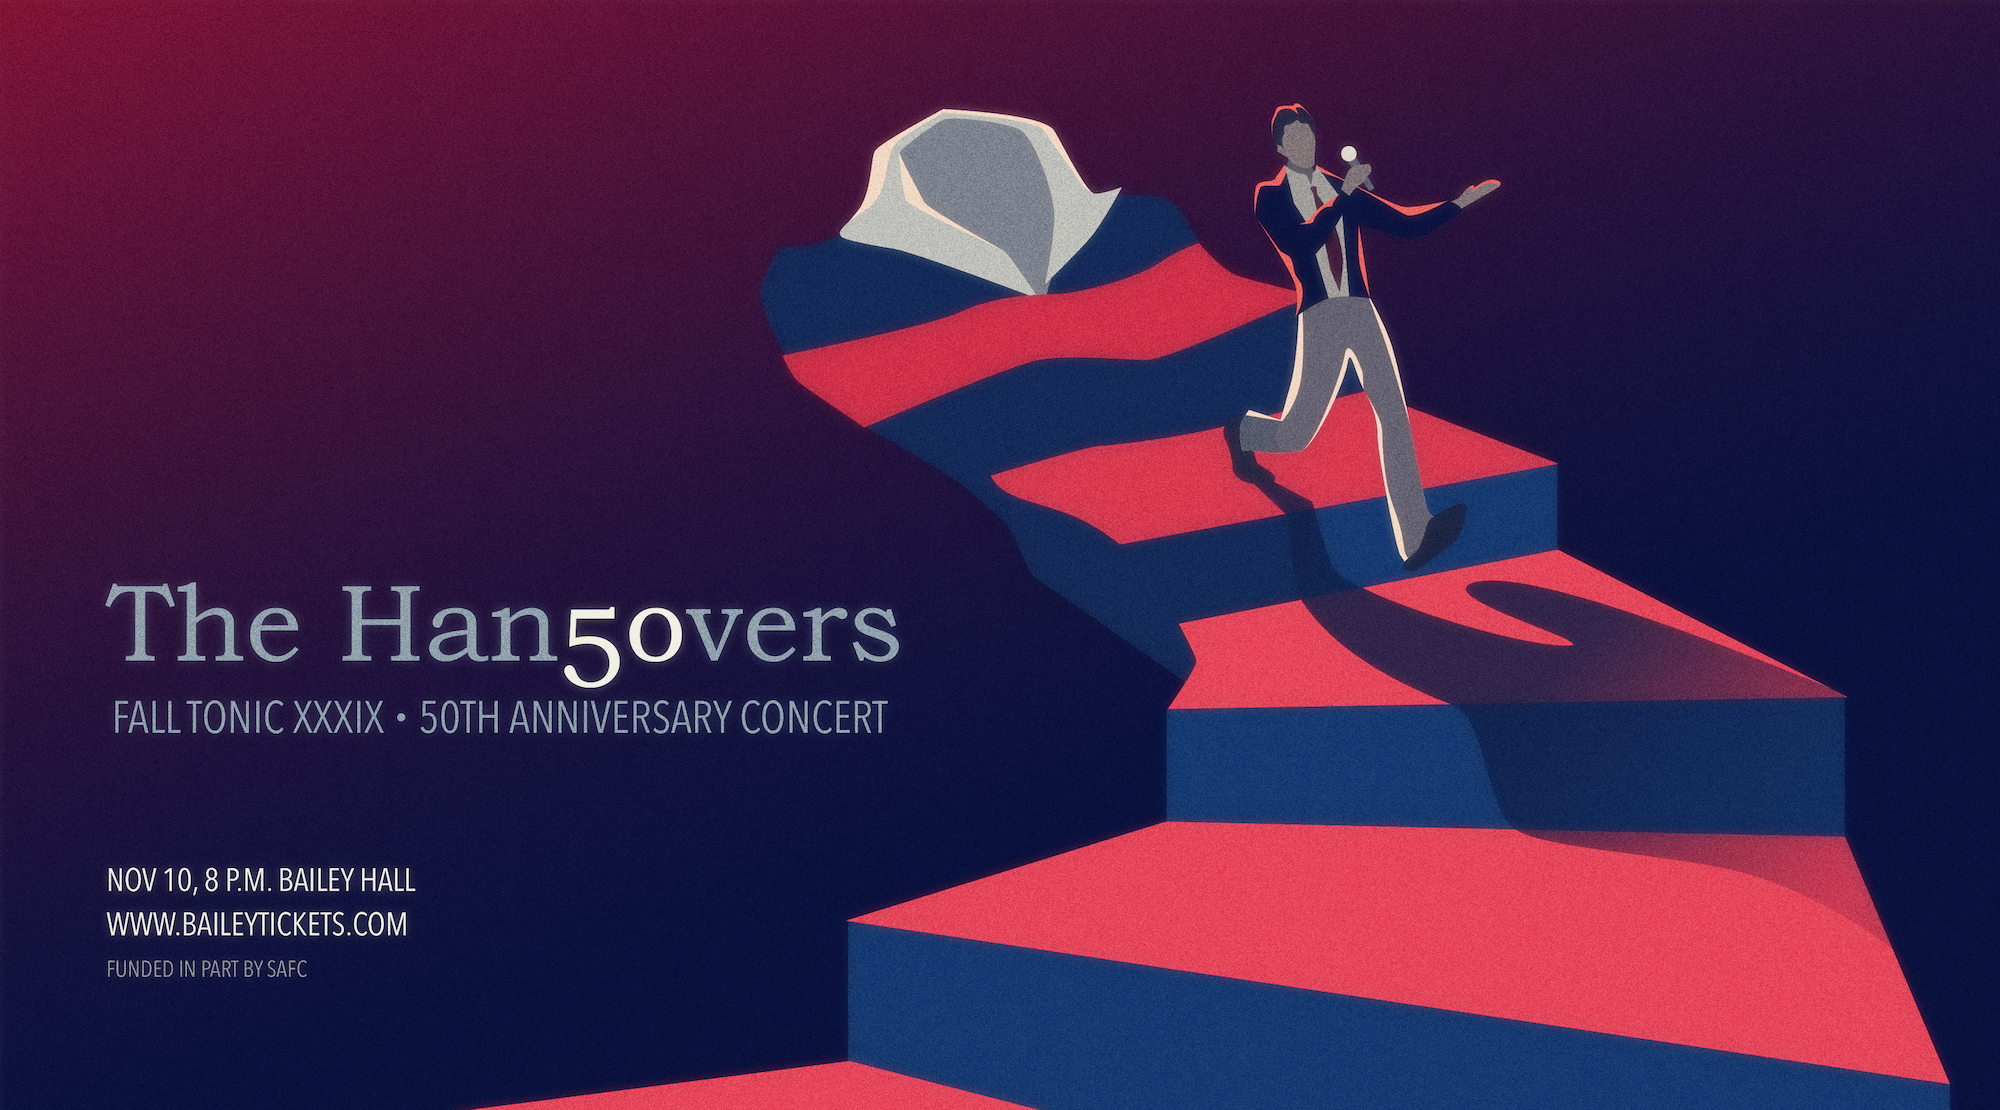 The Hangovers 50th Anniversary Concert - Cornell